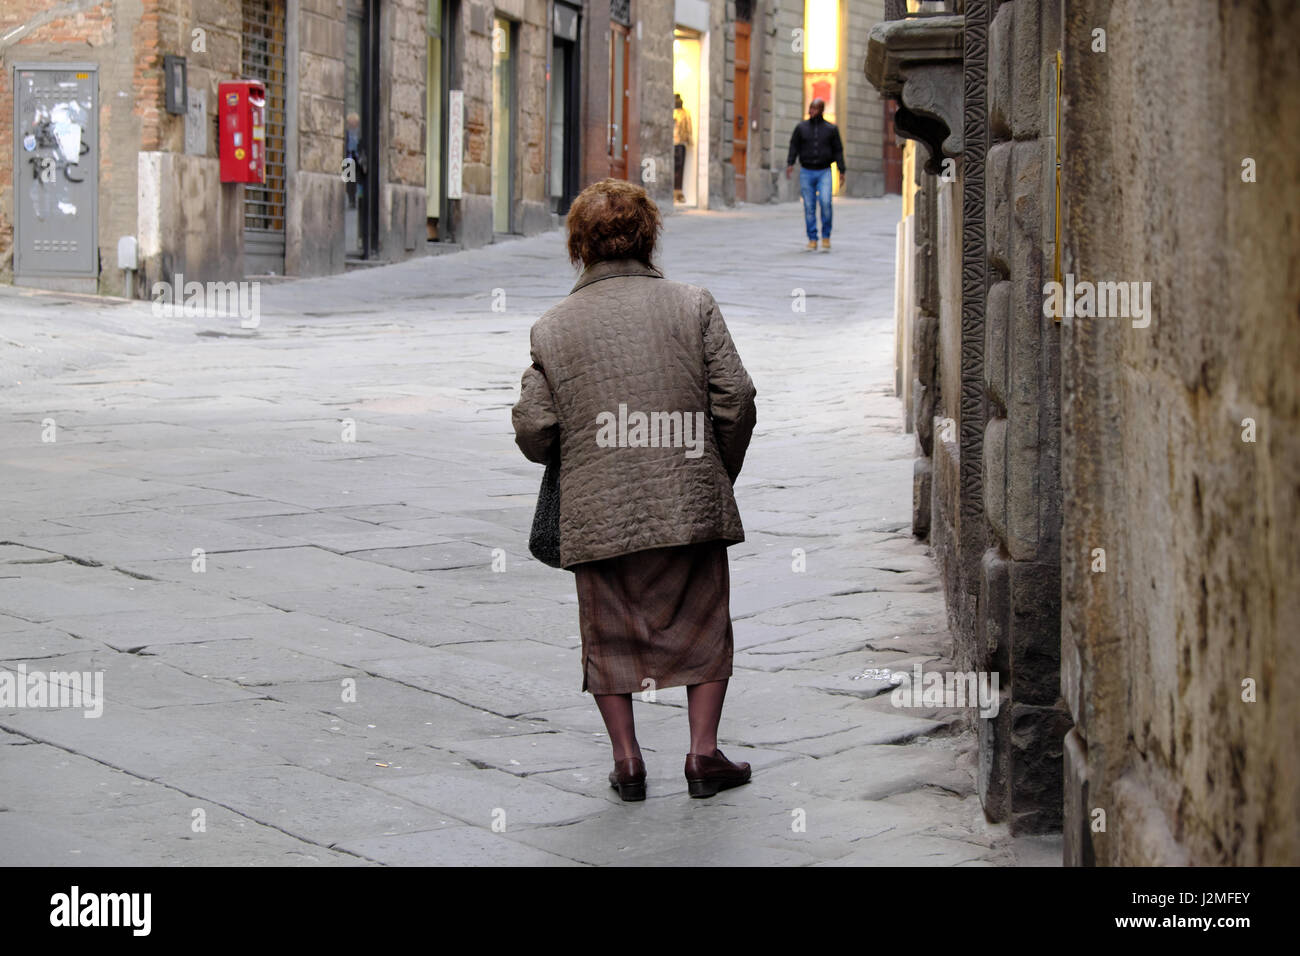 Old Italian woman from behind struggling with walking - Sunday stroll - Fit black man wearing jeans and dark jacket - Stock Image